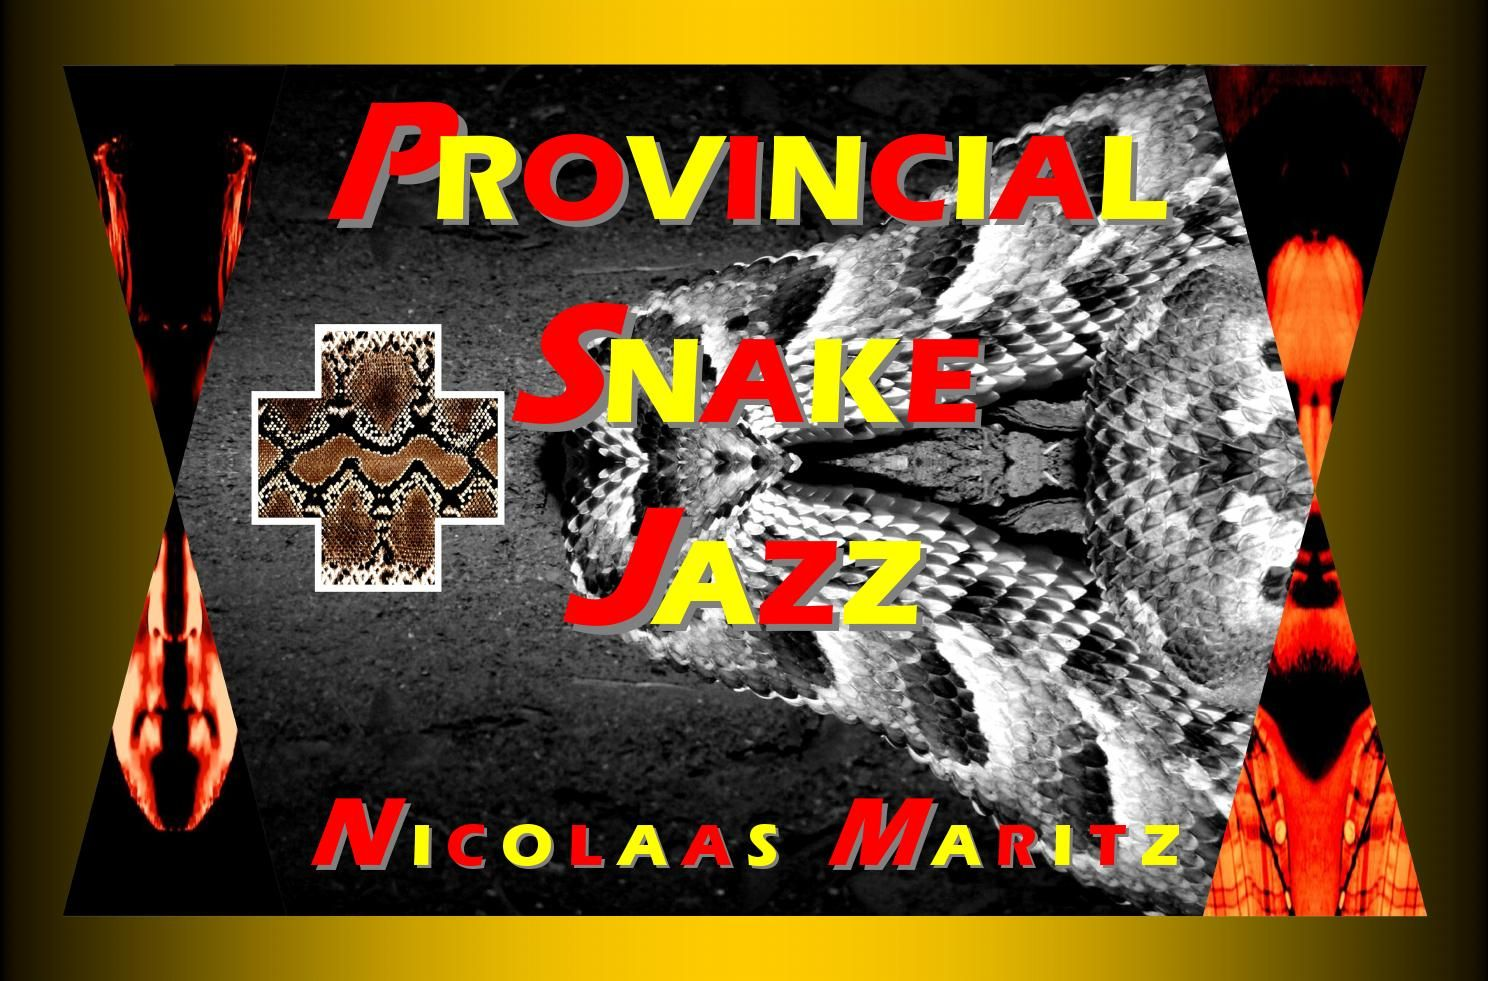 Provincial Snake Jazz - an album  An album of images made by Nicolaas Maritz for the video PROVINCIAL SNAKE JAZZ, a musical collaboration with Vlooi Visagie.   VIDEO: https://youtu.be/XCMlMRjMaxE  MP3 TRACK: https://soundcloud.com/nicolaasmaritz